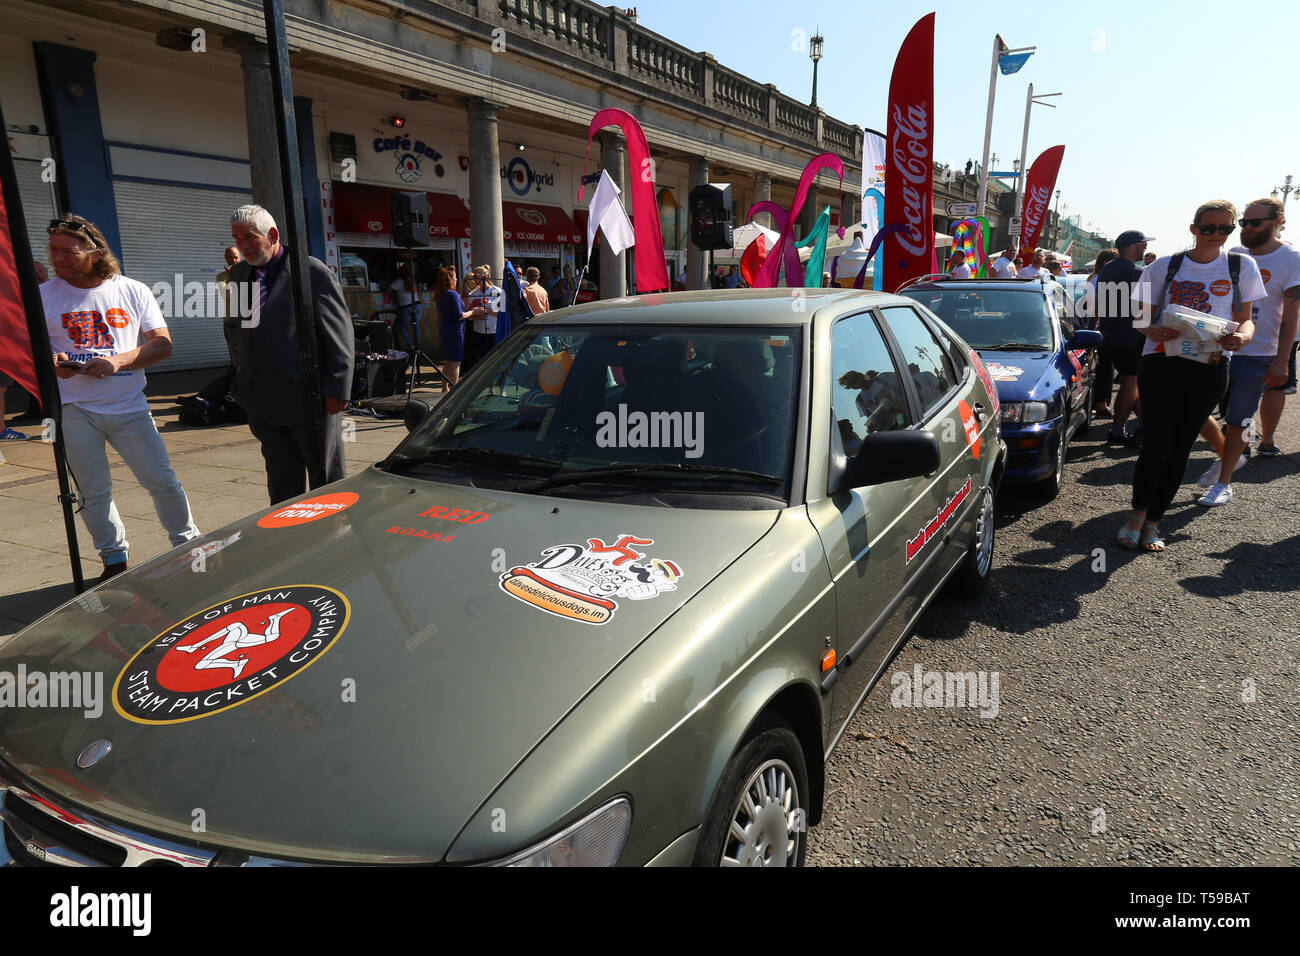 Cars parked on show for the charity beep beep tour. Raising Awareness for Meningitis, Brighton. Easter 2019 - Stock Image